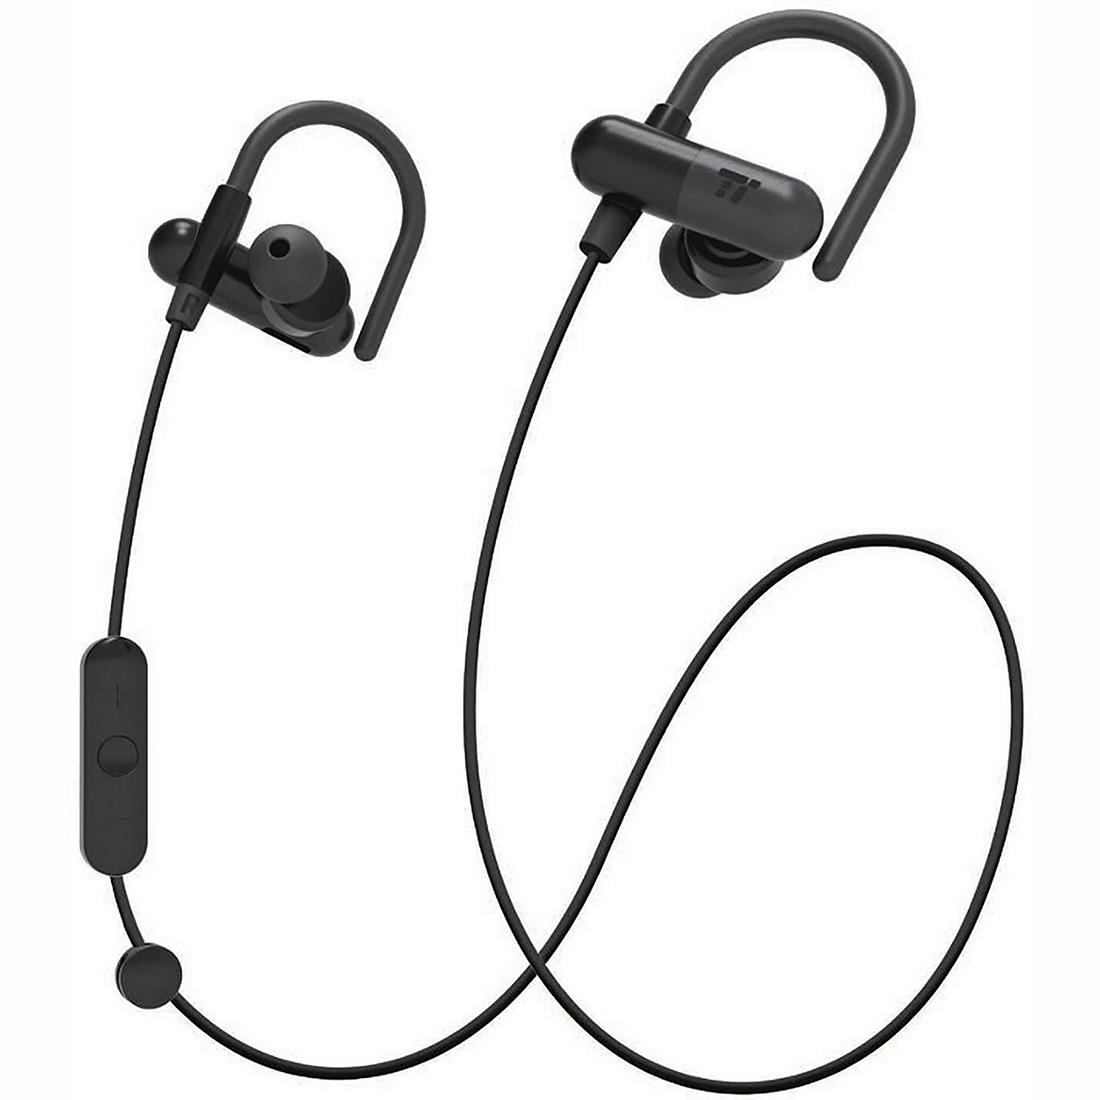 cdb23a5cb8a TaoTronics BH12BB Wireless Earbud Headphones - Black - BJs WholeSale ...